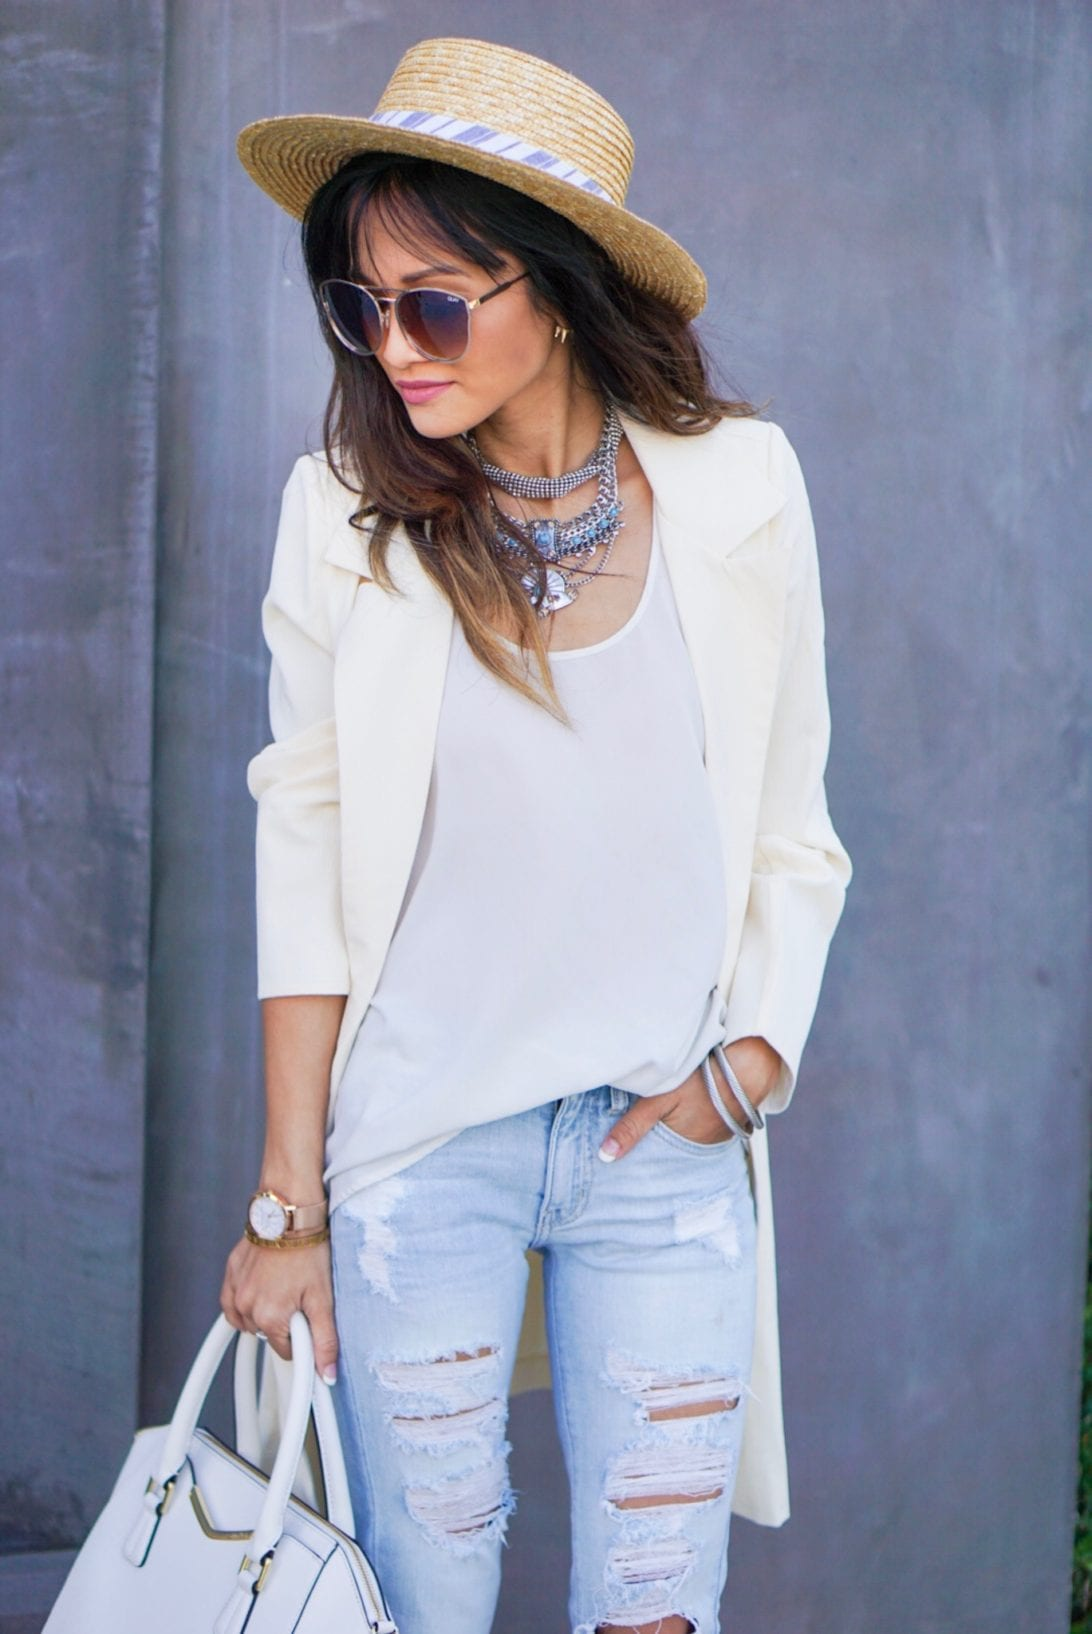 blazer, summer ootd, spring look, destructed jeans, boat hat, statement necklace, nuetral outfit